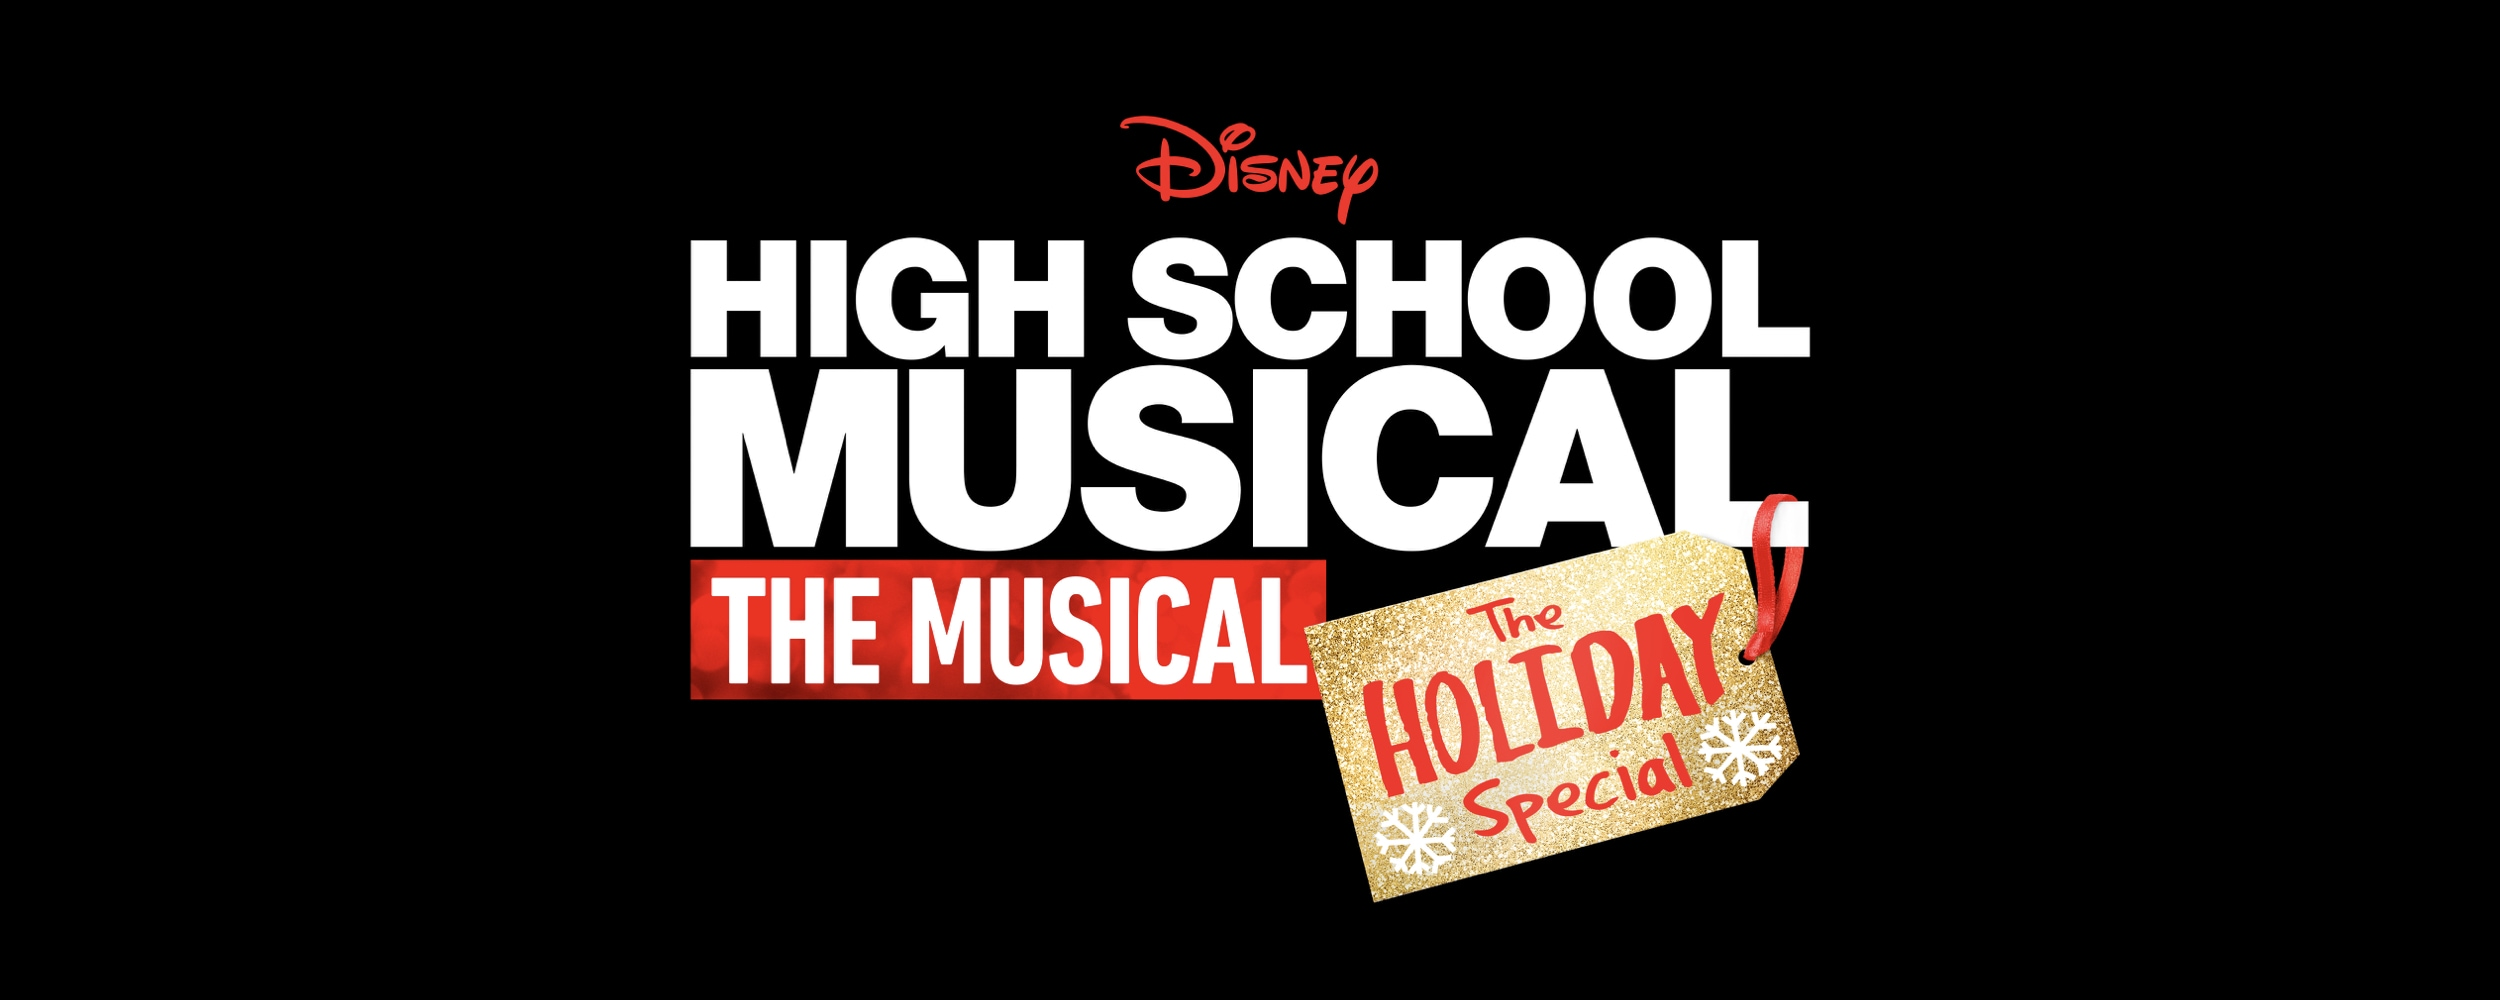 High School Musical: The Musical: The Holiday Special Media Kit